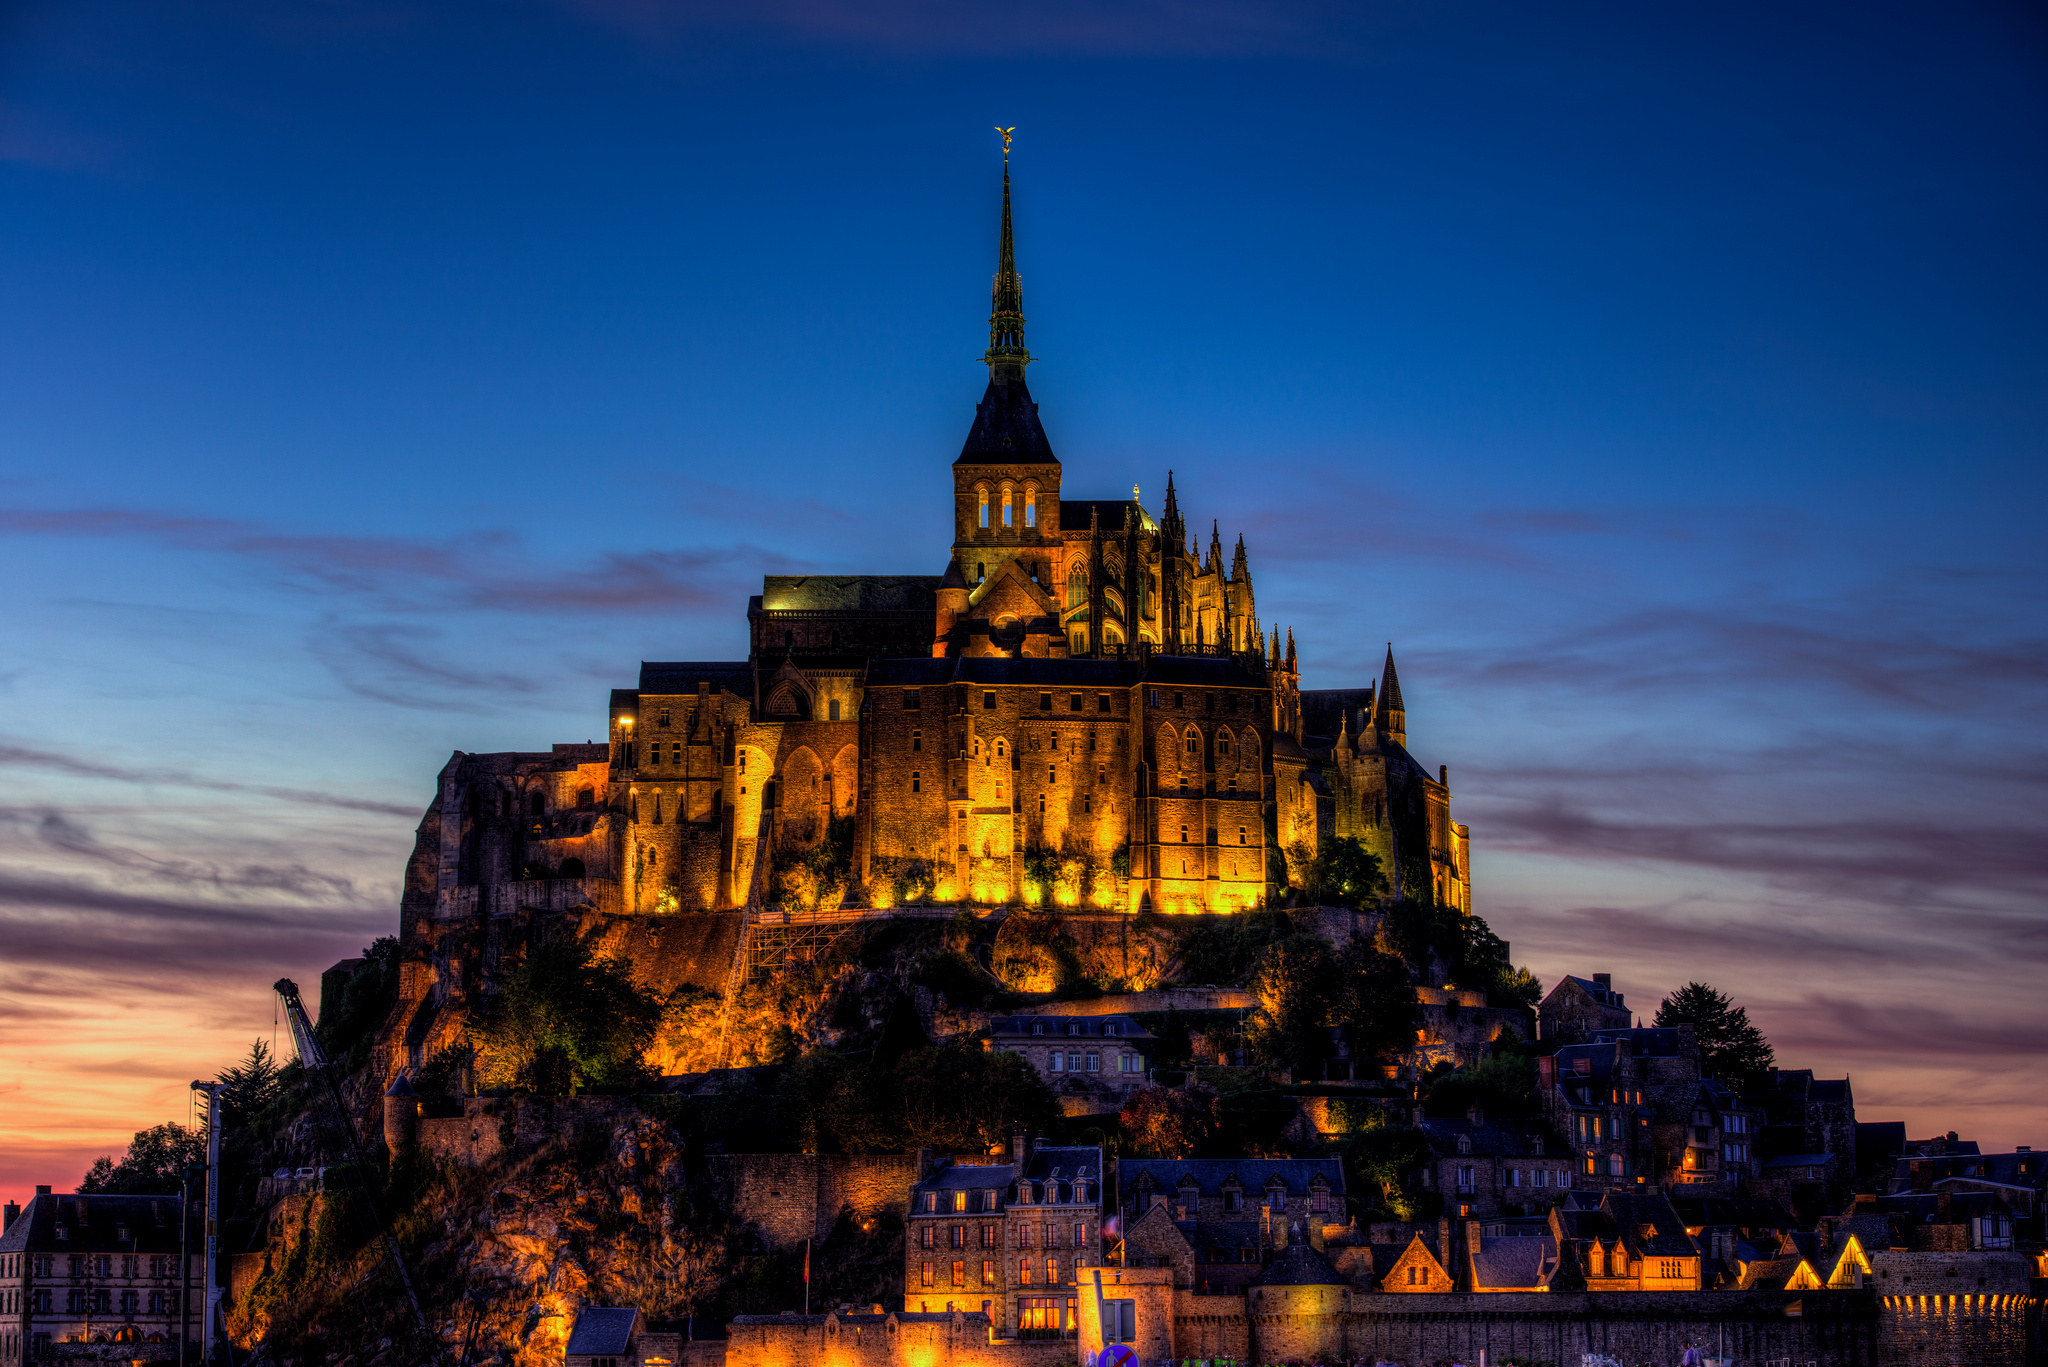 Mont Saint-Michel by night